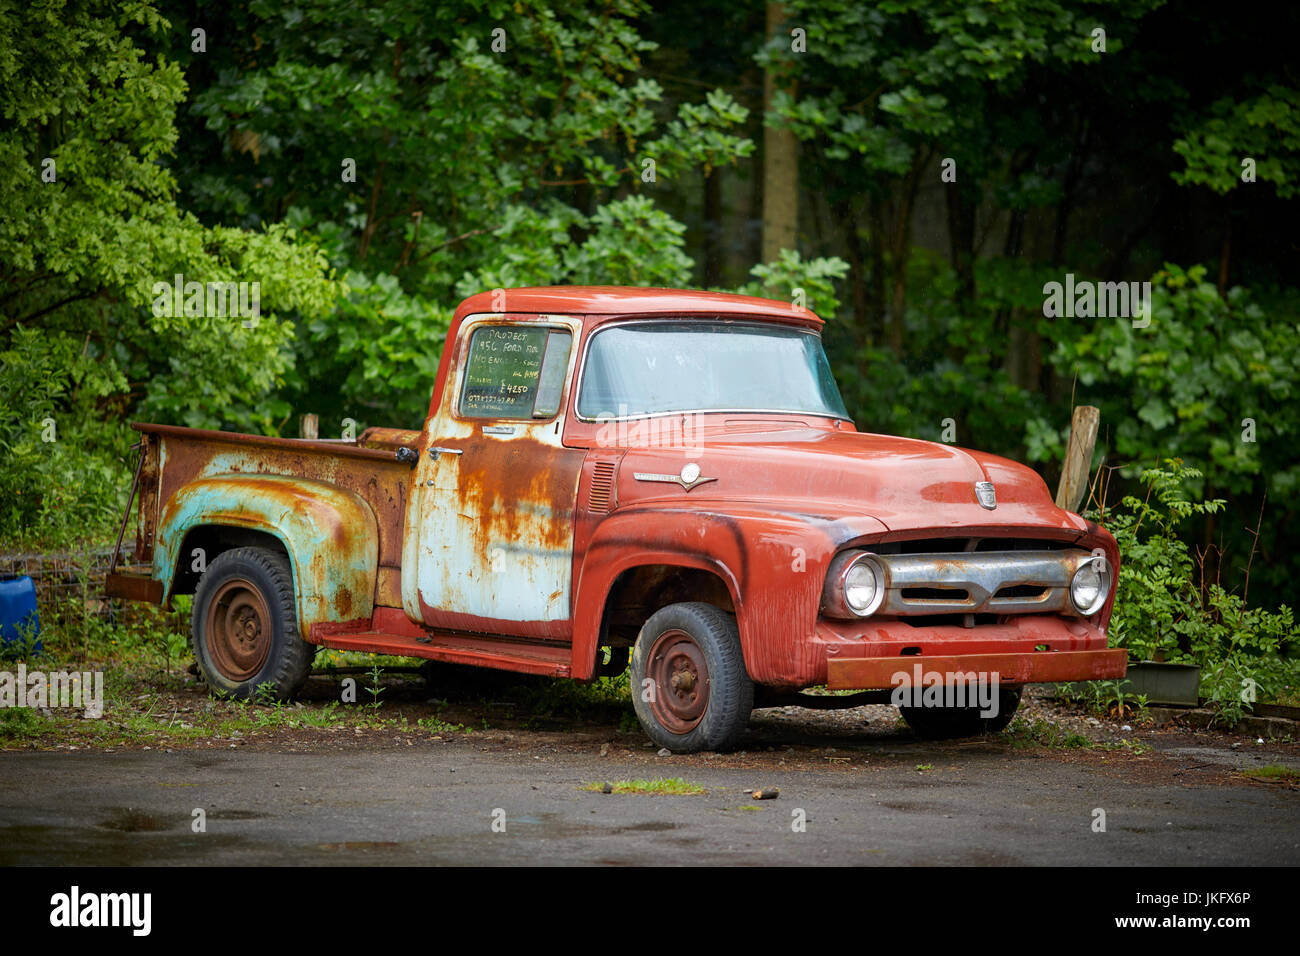 Rustyold American Classic Cars In Need Of Restoration For Sale